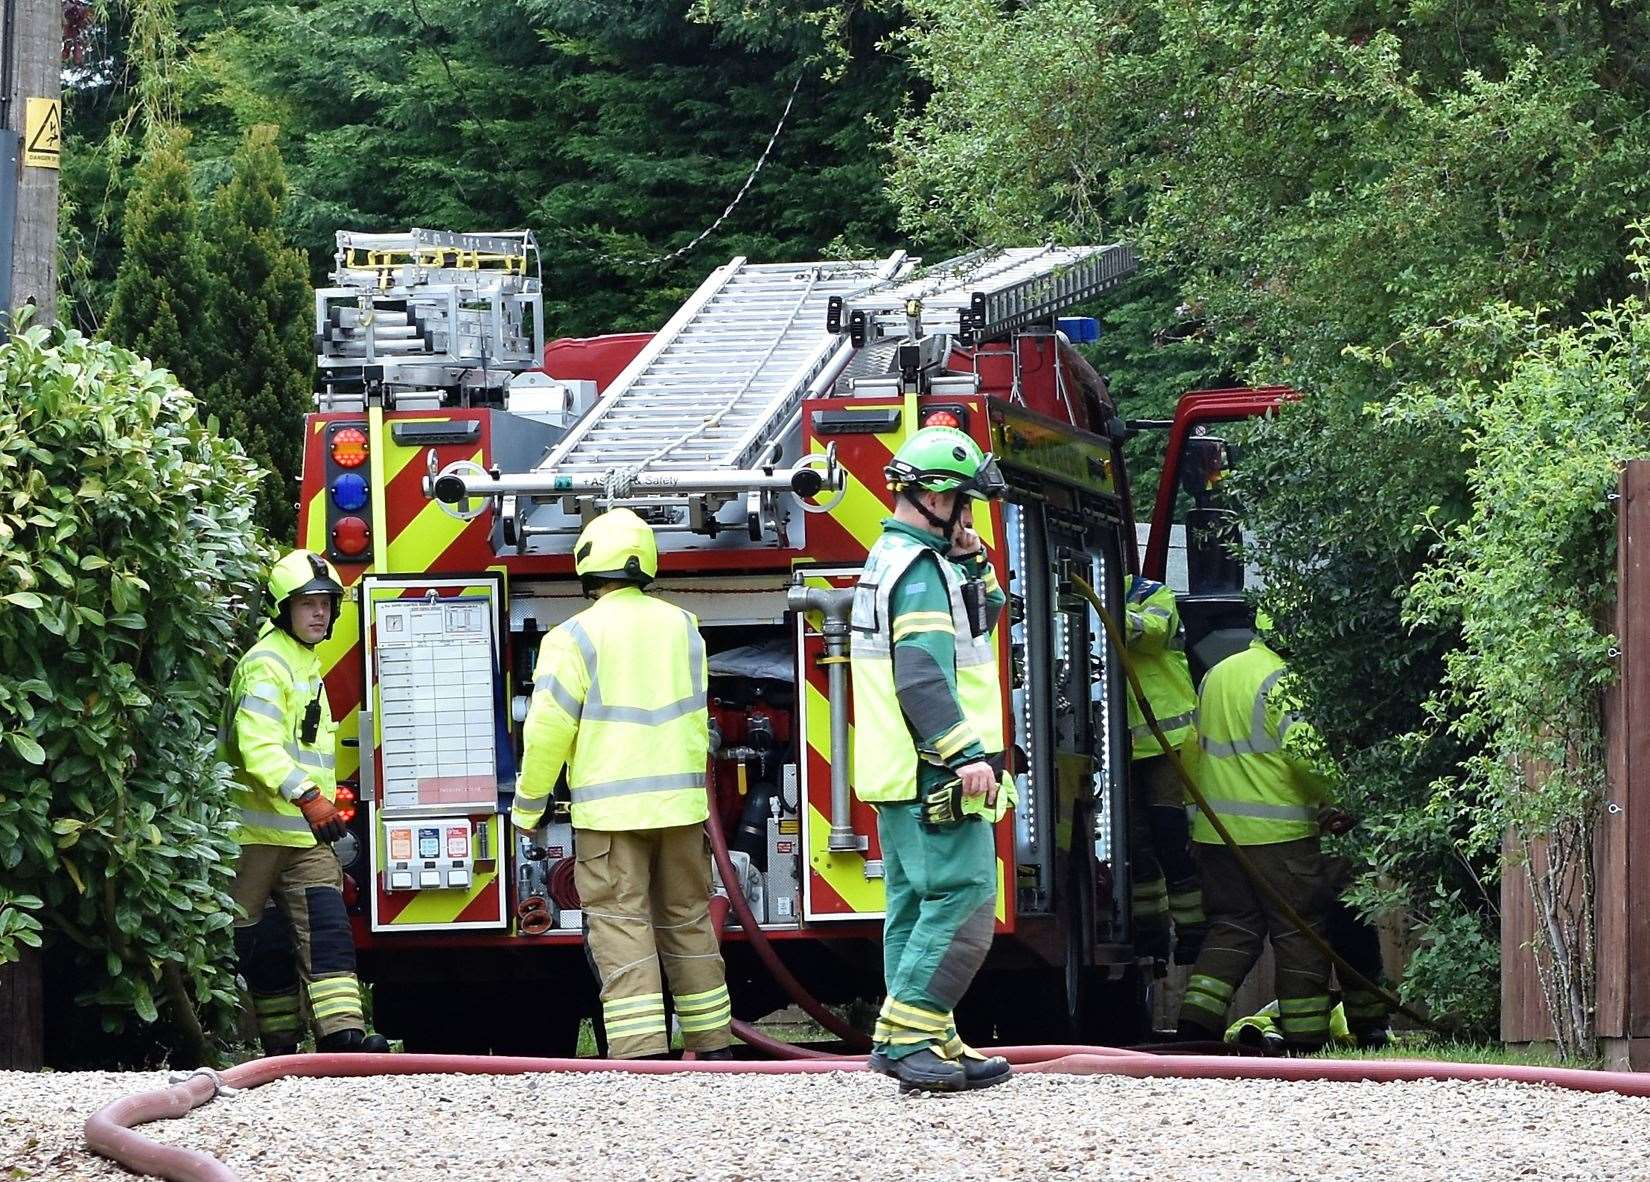 Emergency crews at scene of suspected gas explosion in Lidgate (10092223)